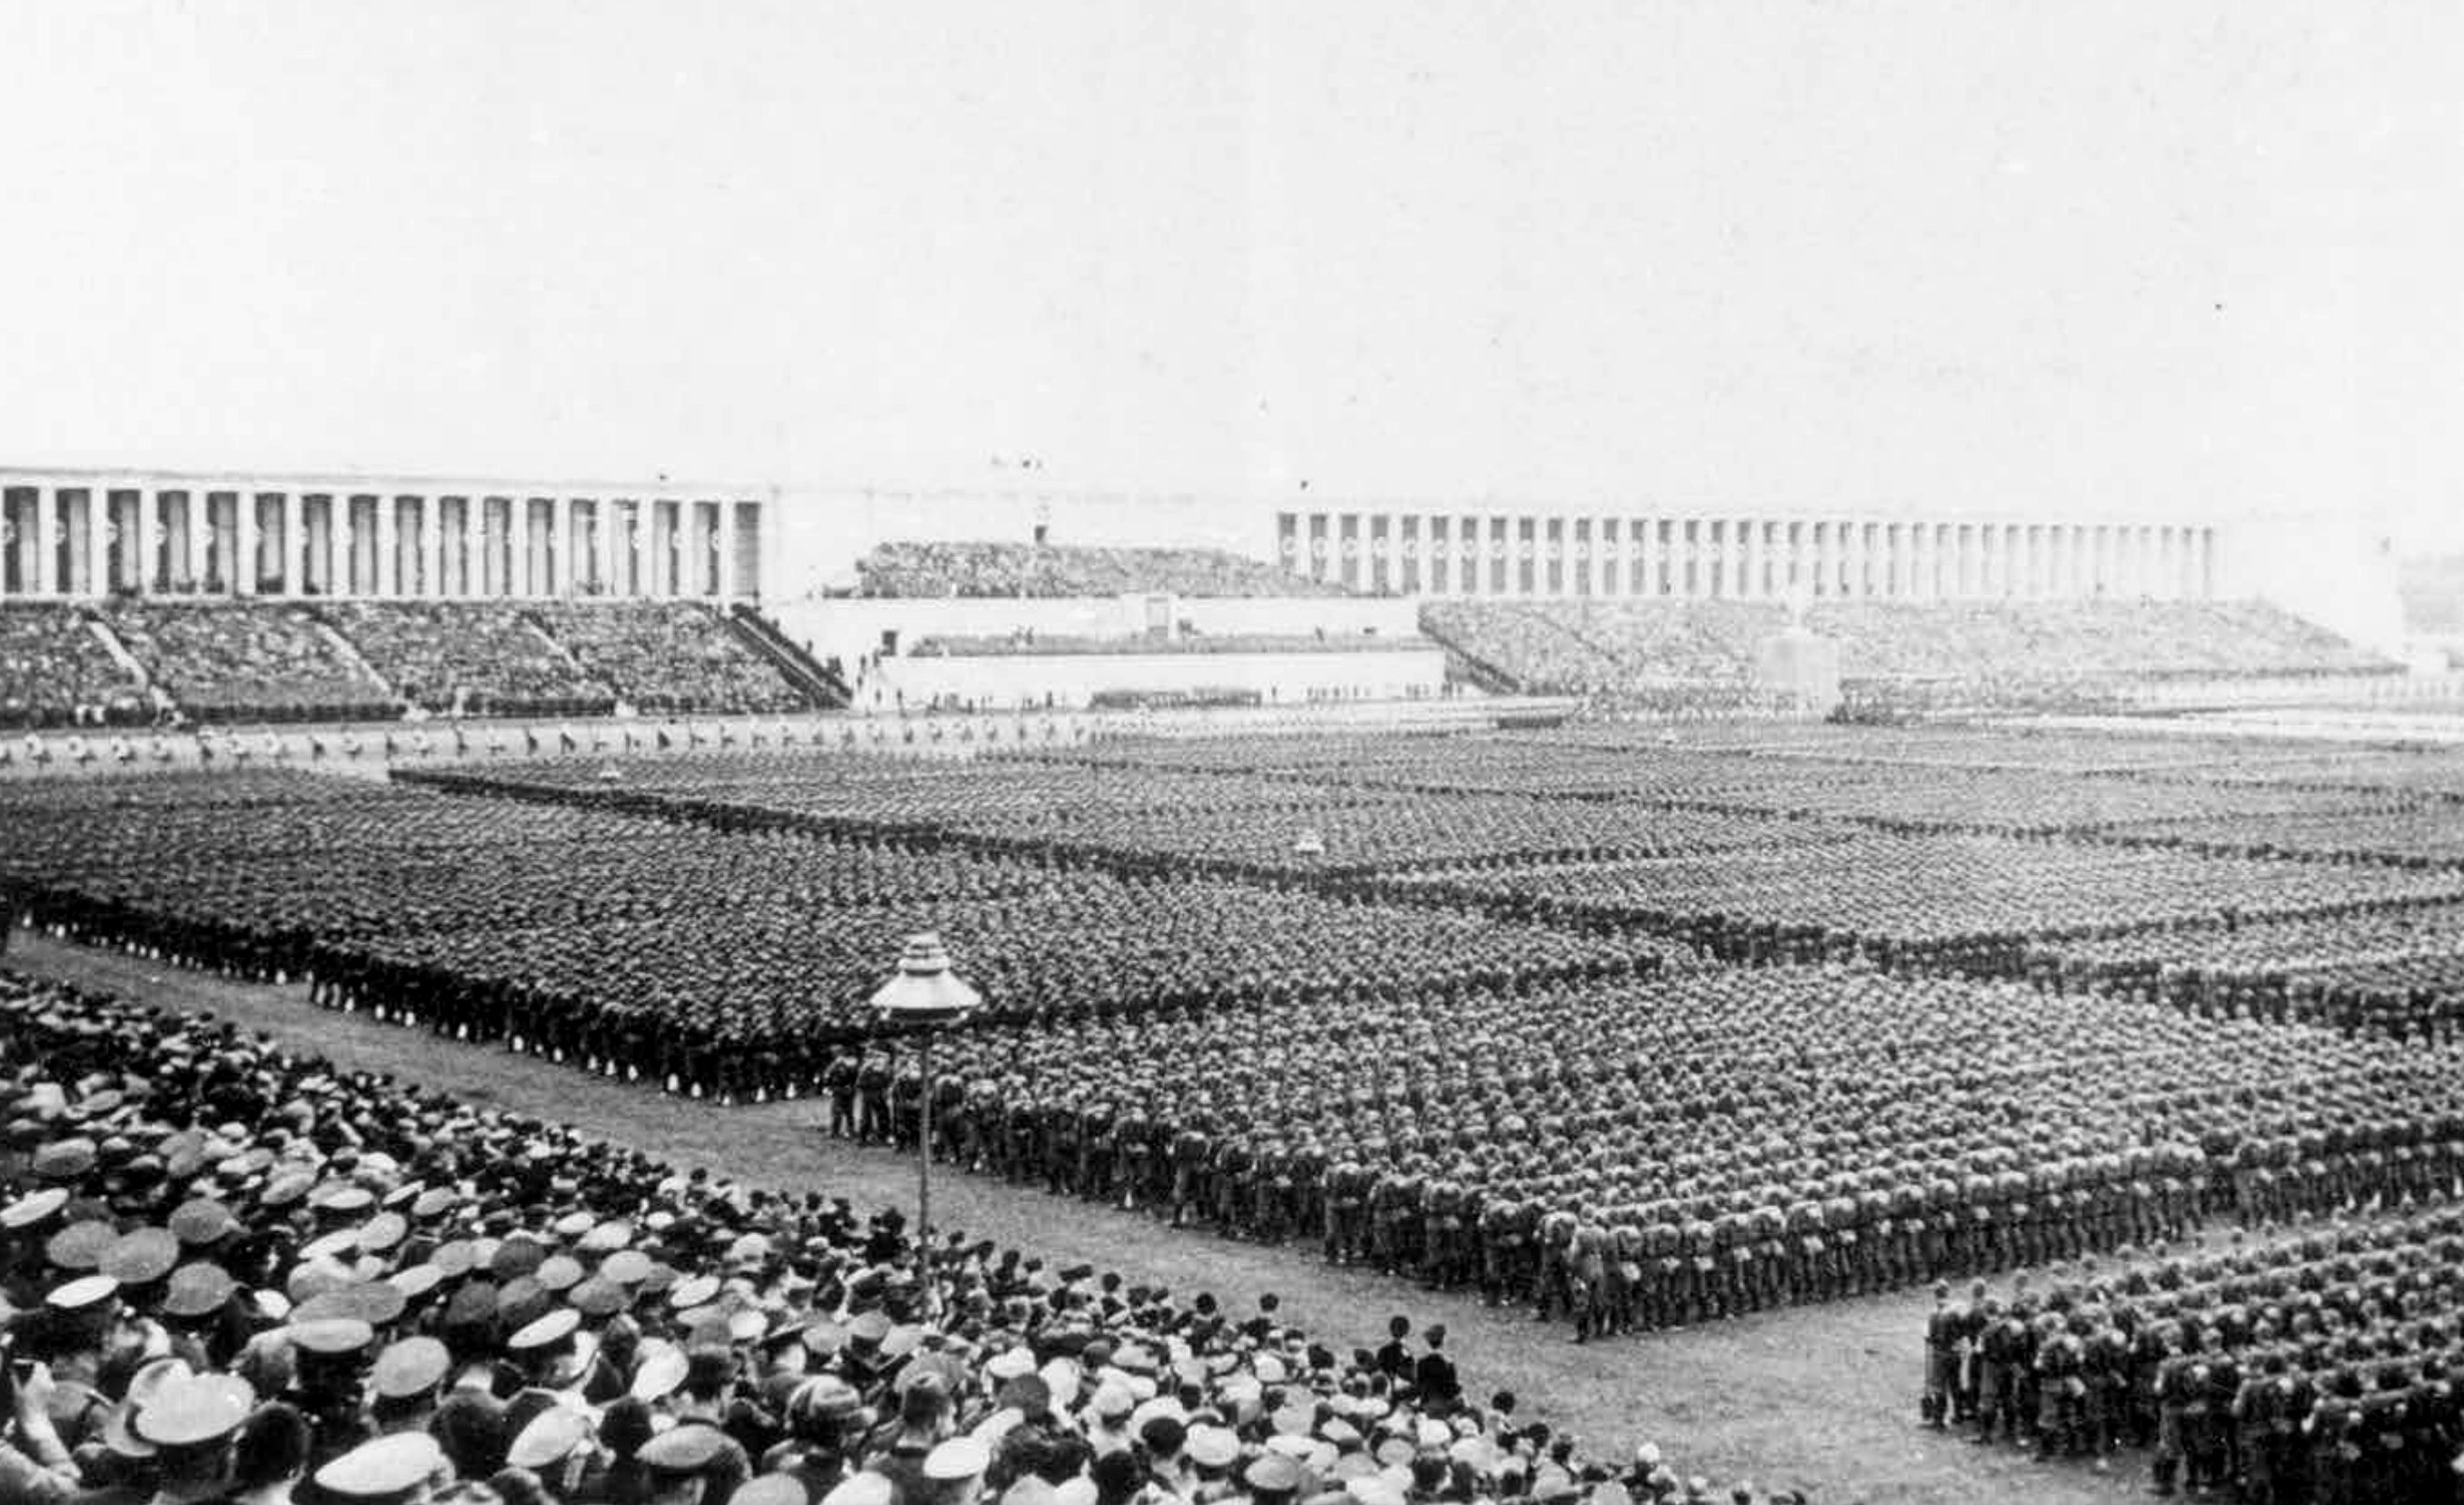 1936-zeppelin-field-nuremberg-rally-nazi